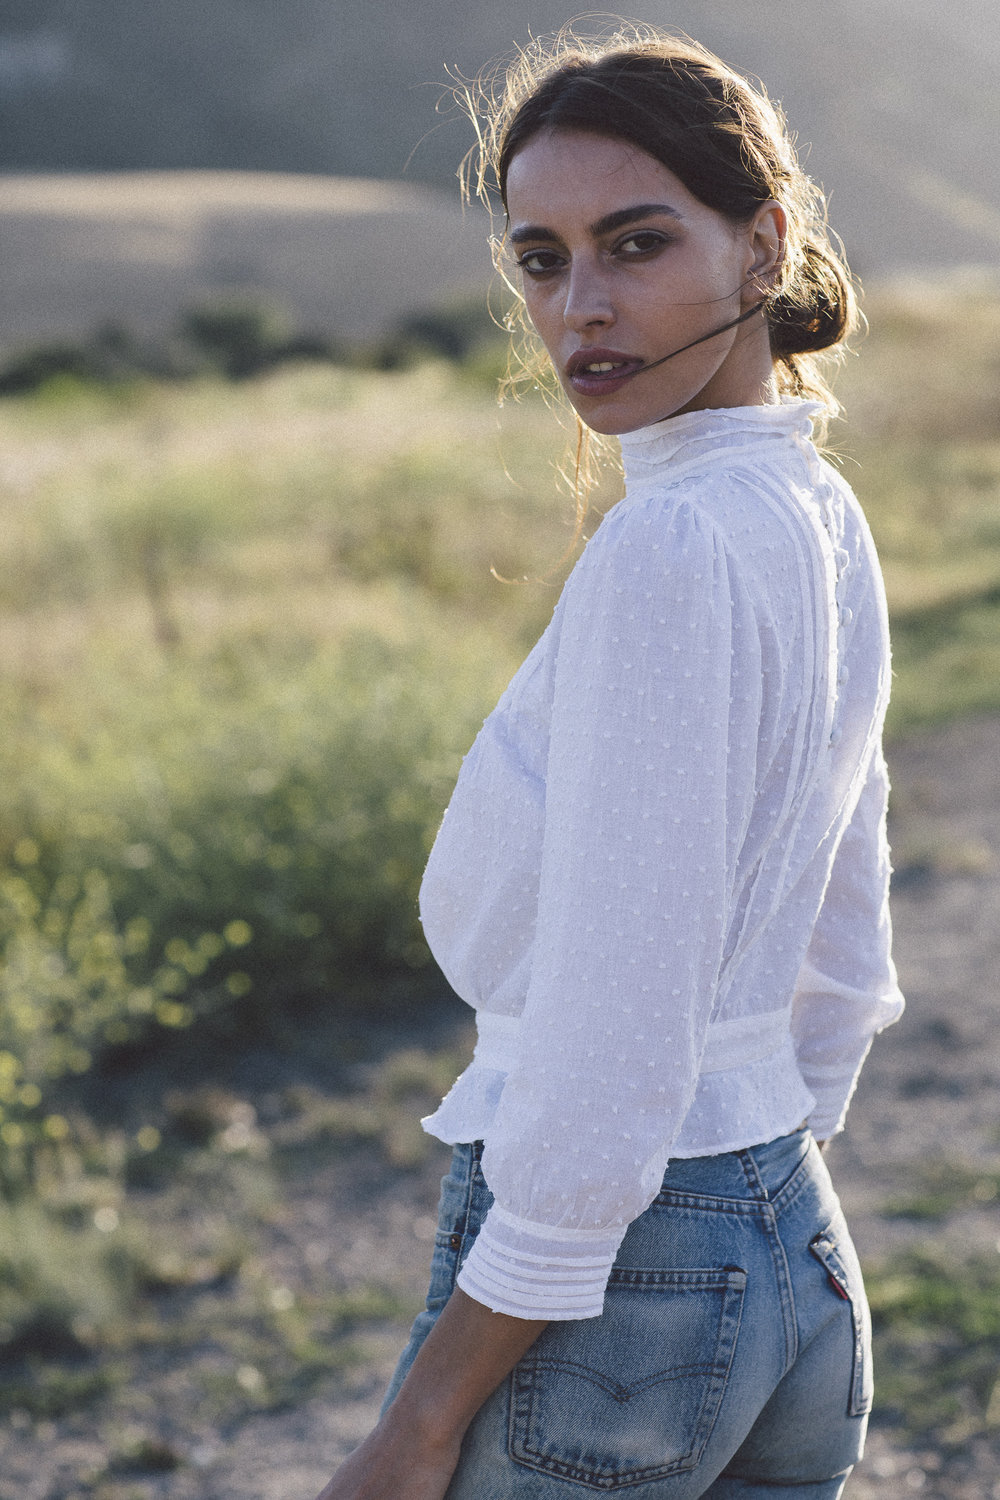 Kara Thoms shoot with Mary Gulin at the San Julien Ranch.